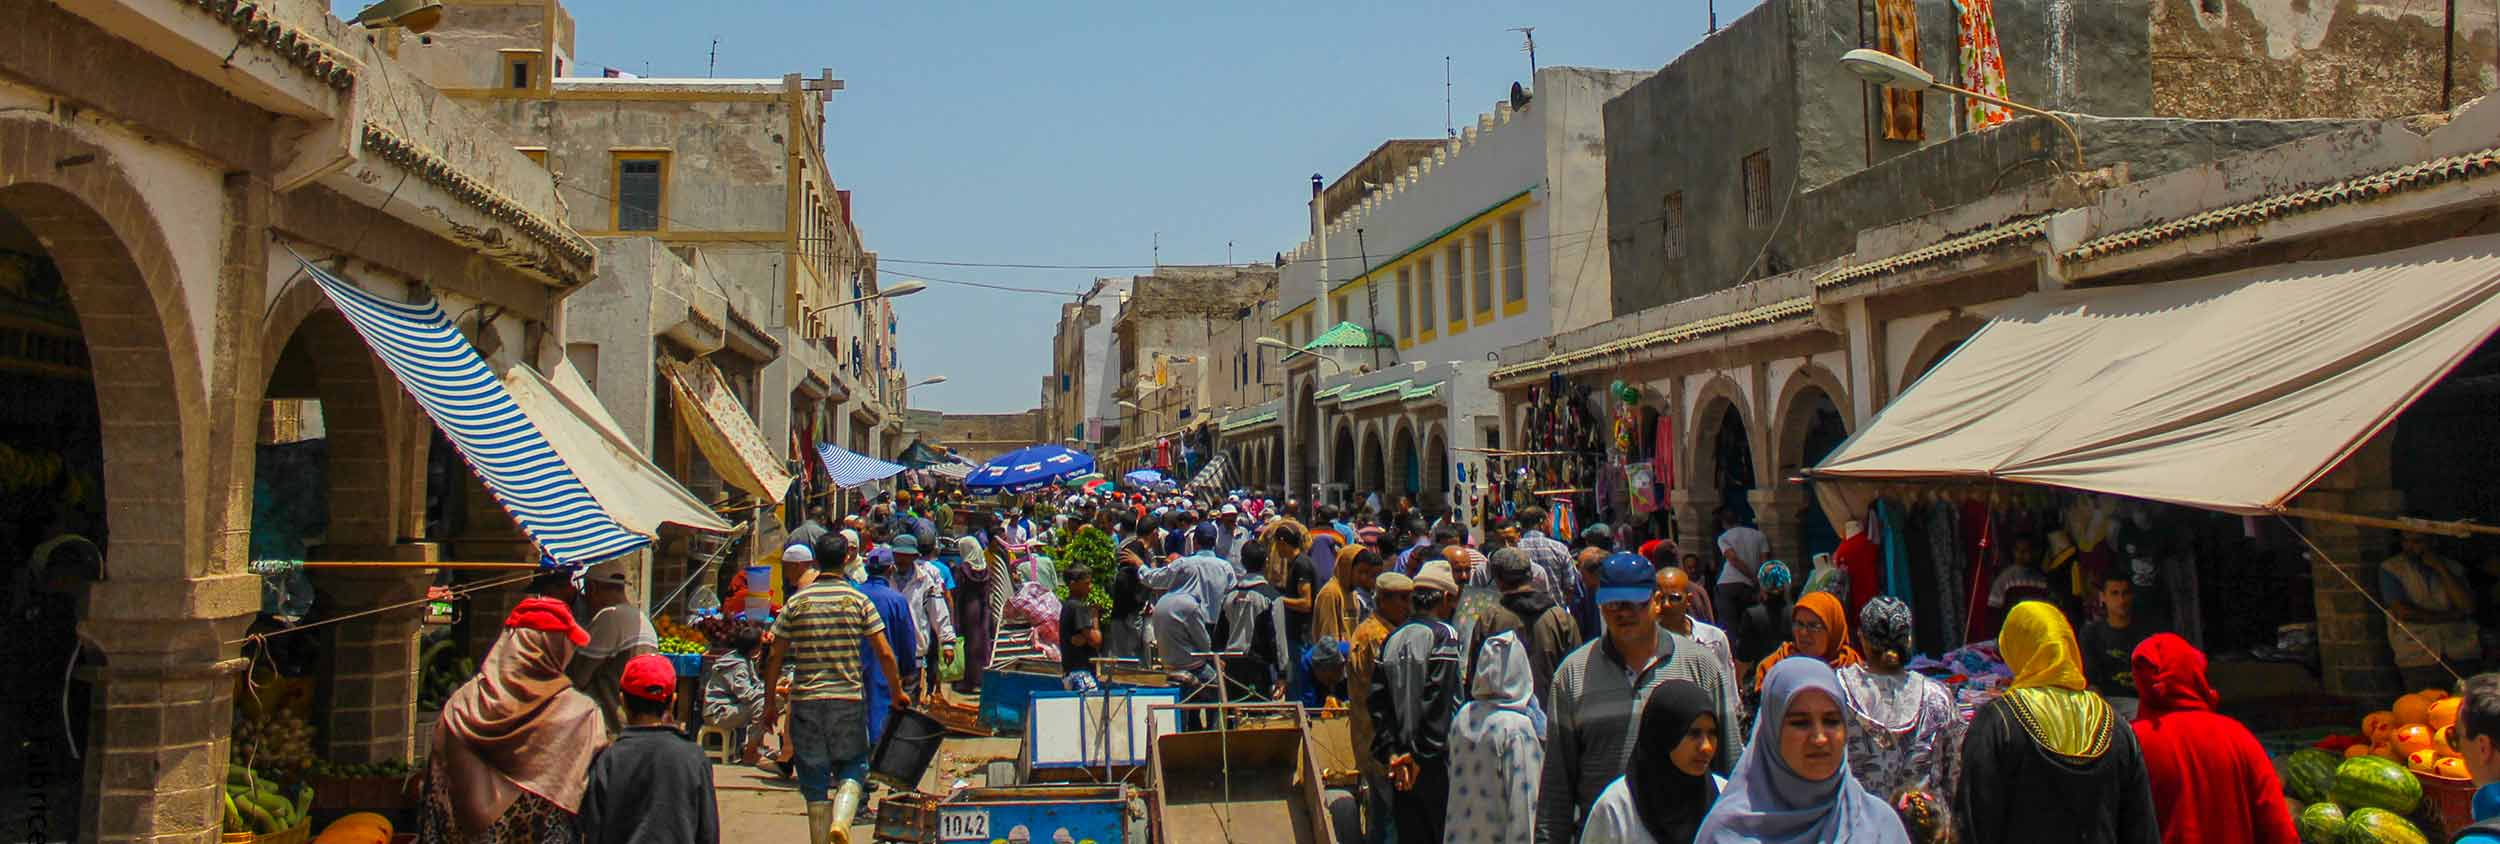 essaouira_morocco_kiteworld_travel_header01